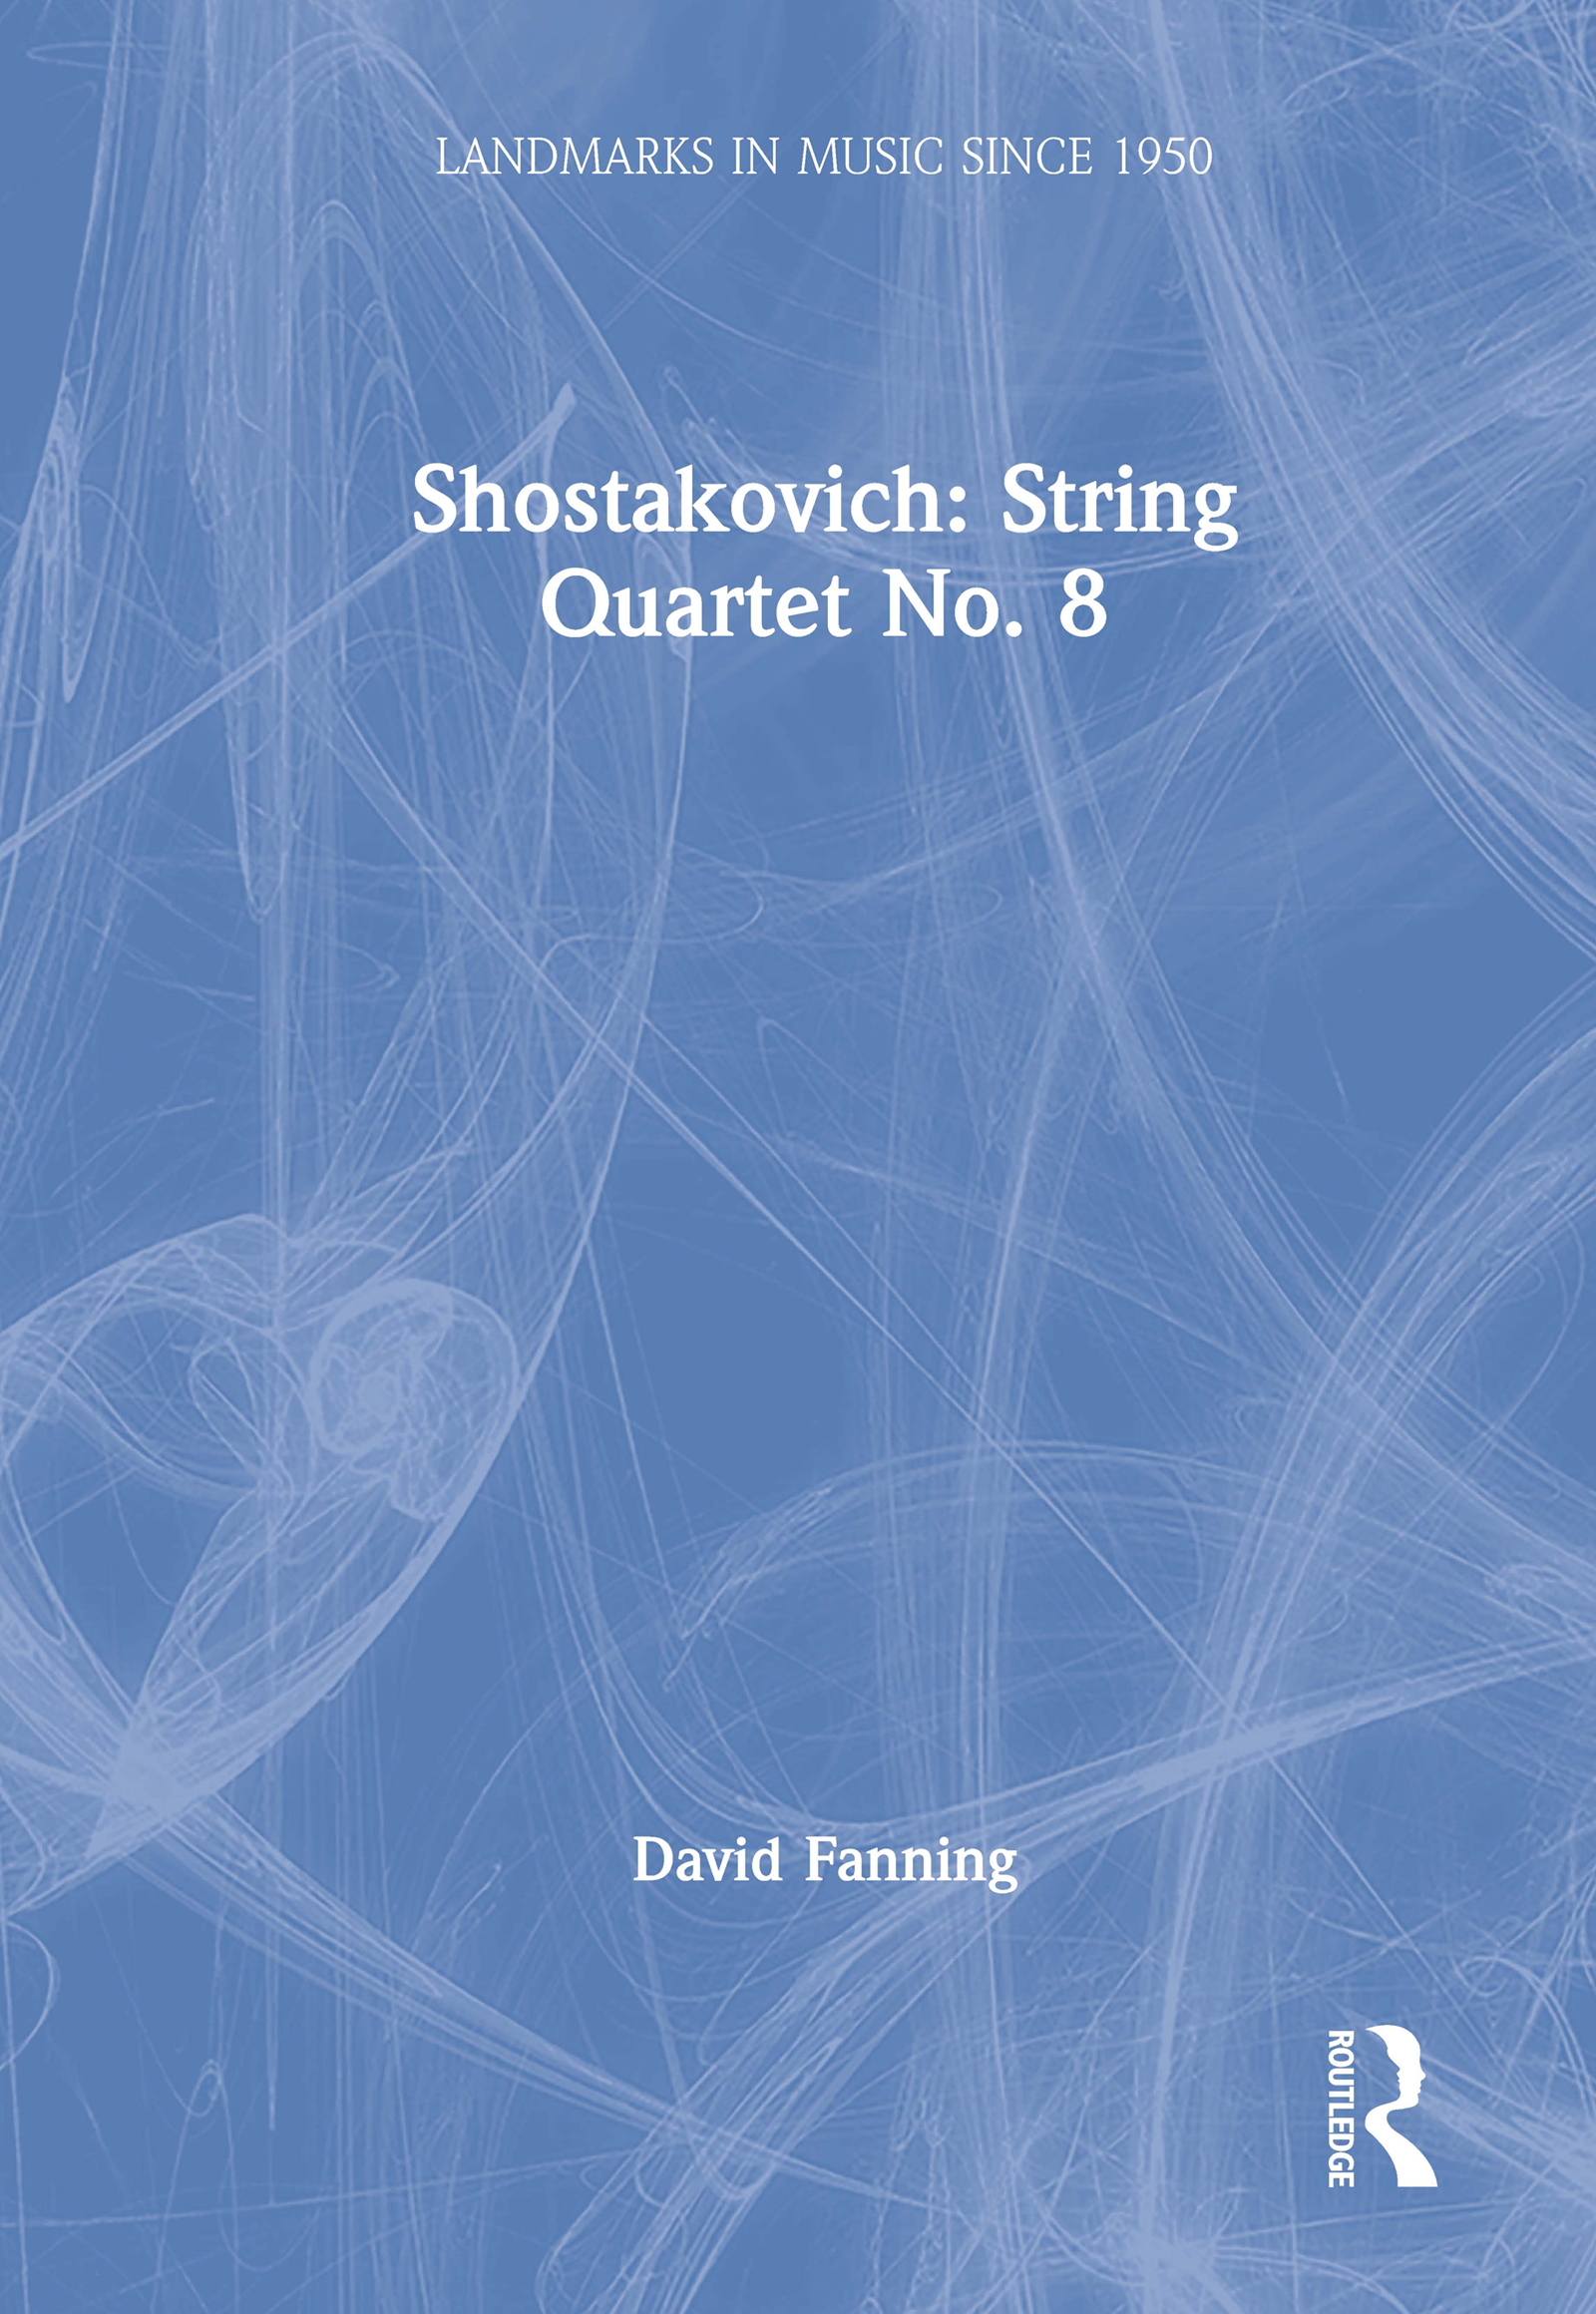 Shostakovich: String Quartet No. 8 book cover